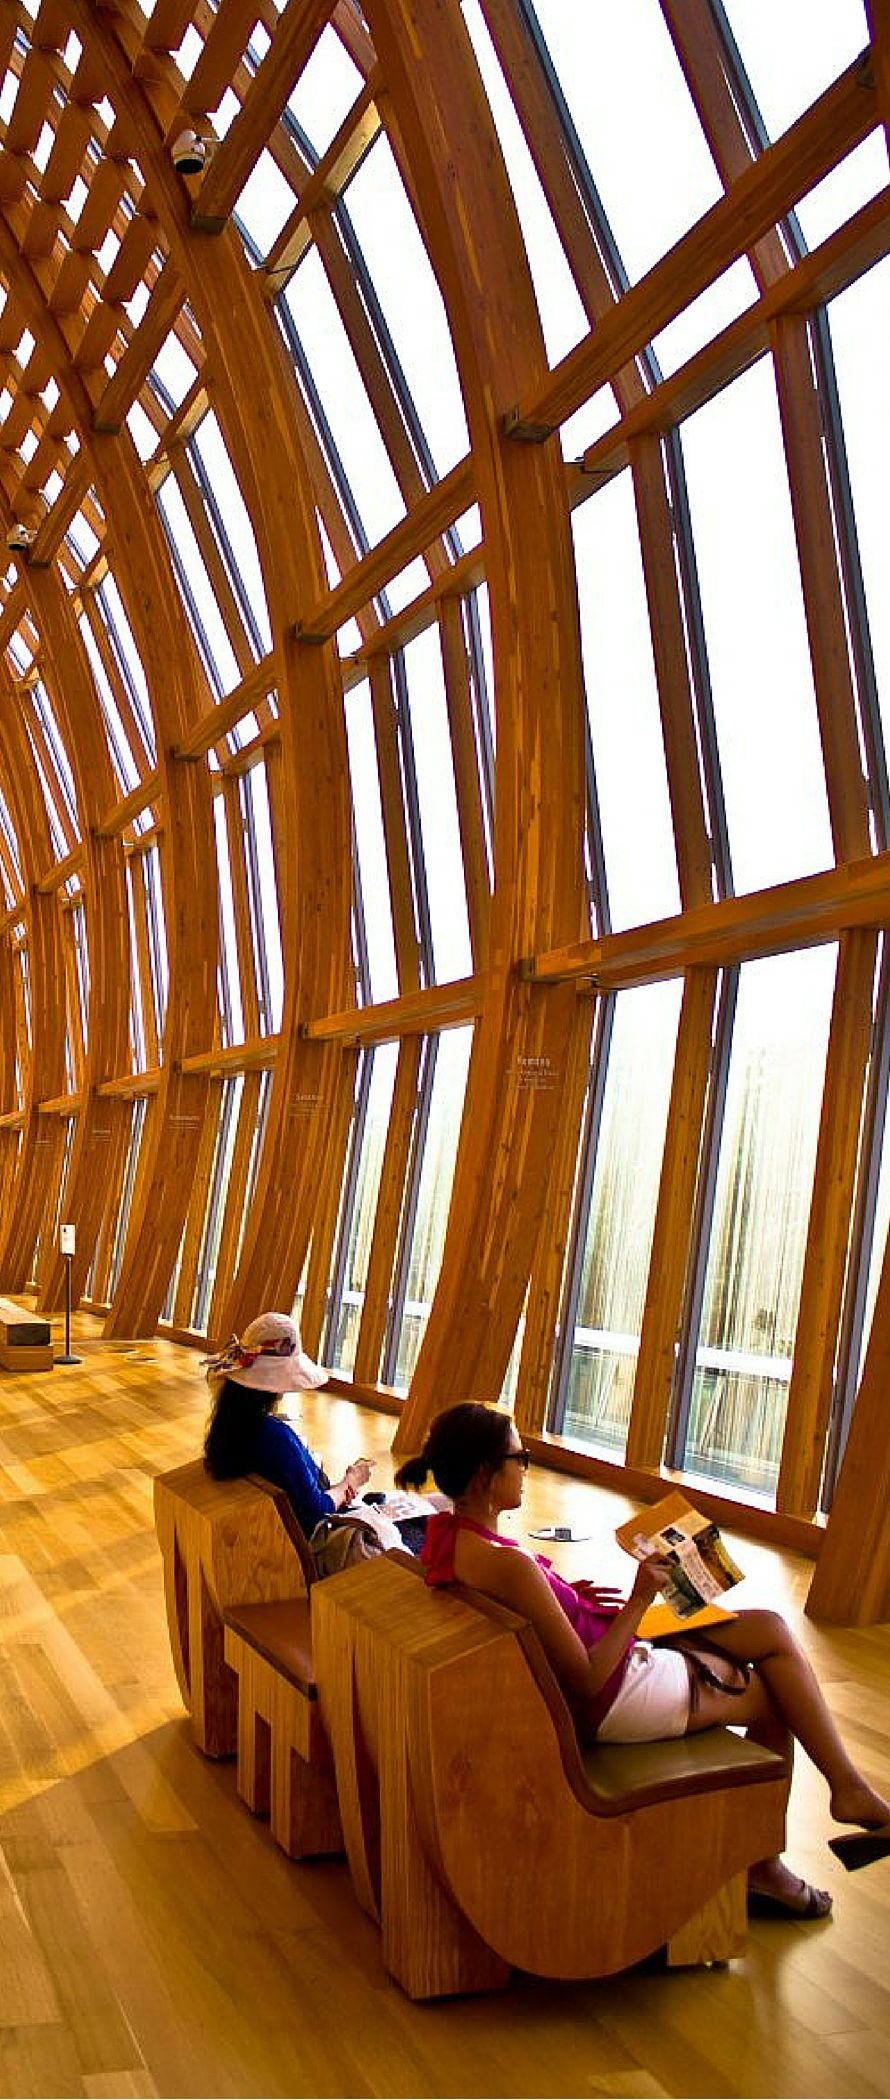 10 Best Cities In Canada For Kids With Images Best Cities Toronto Tourism